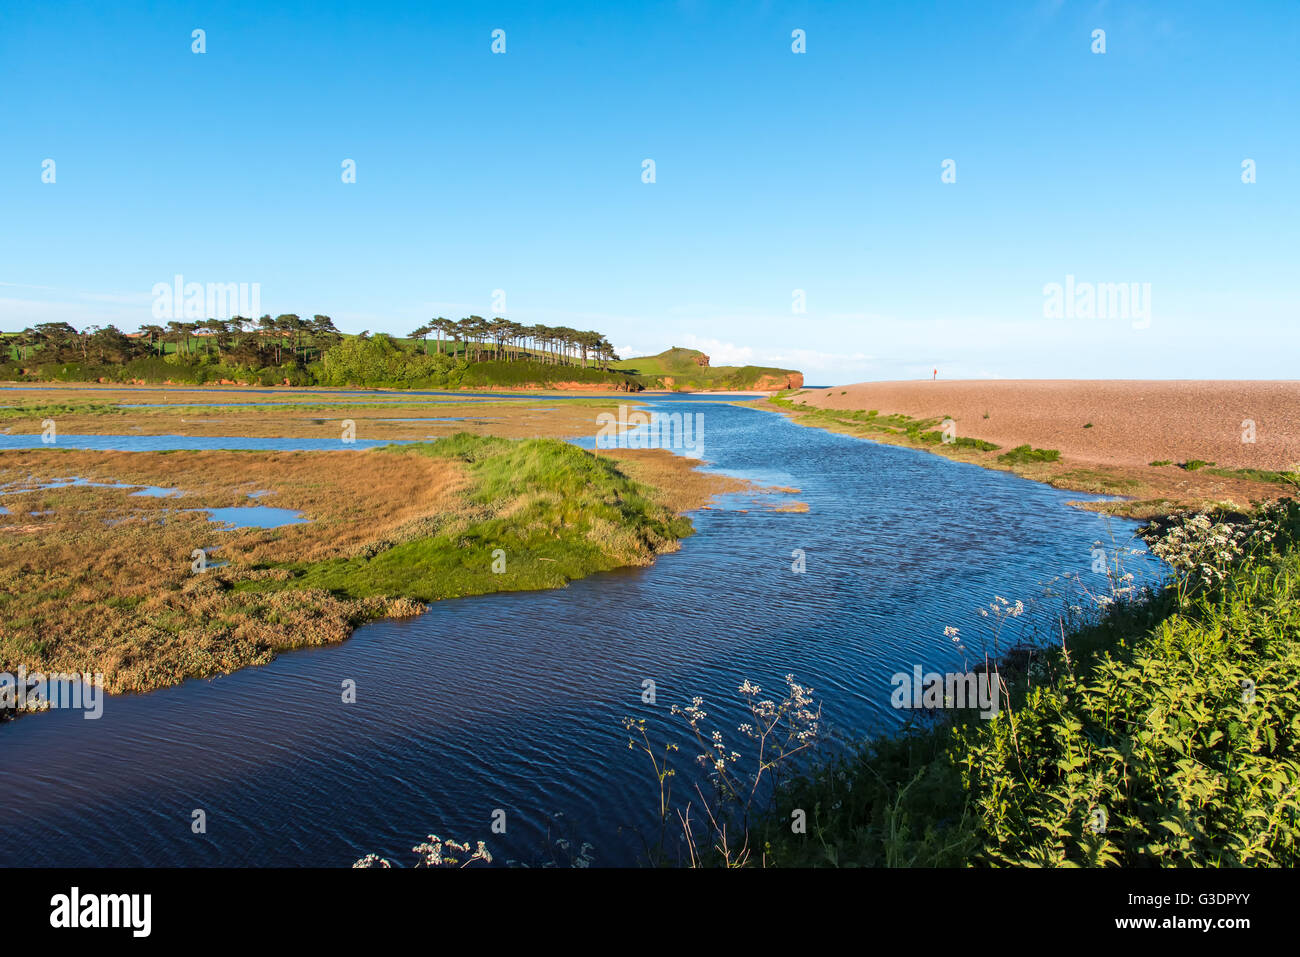 The Saltings, a salt marsh at the mouth of the River Otter, near Budleigh Salterton, Devon. Stock Photo